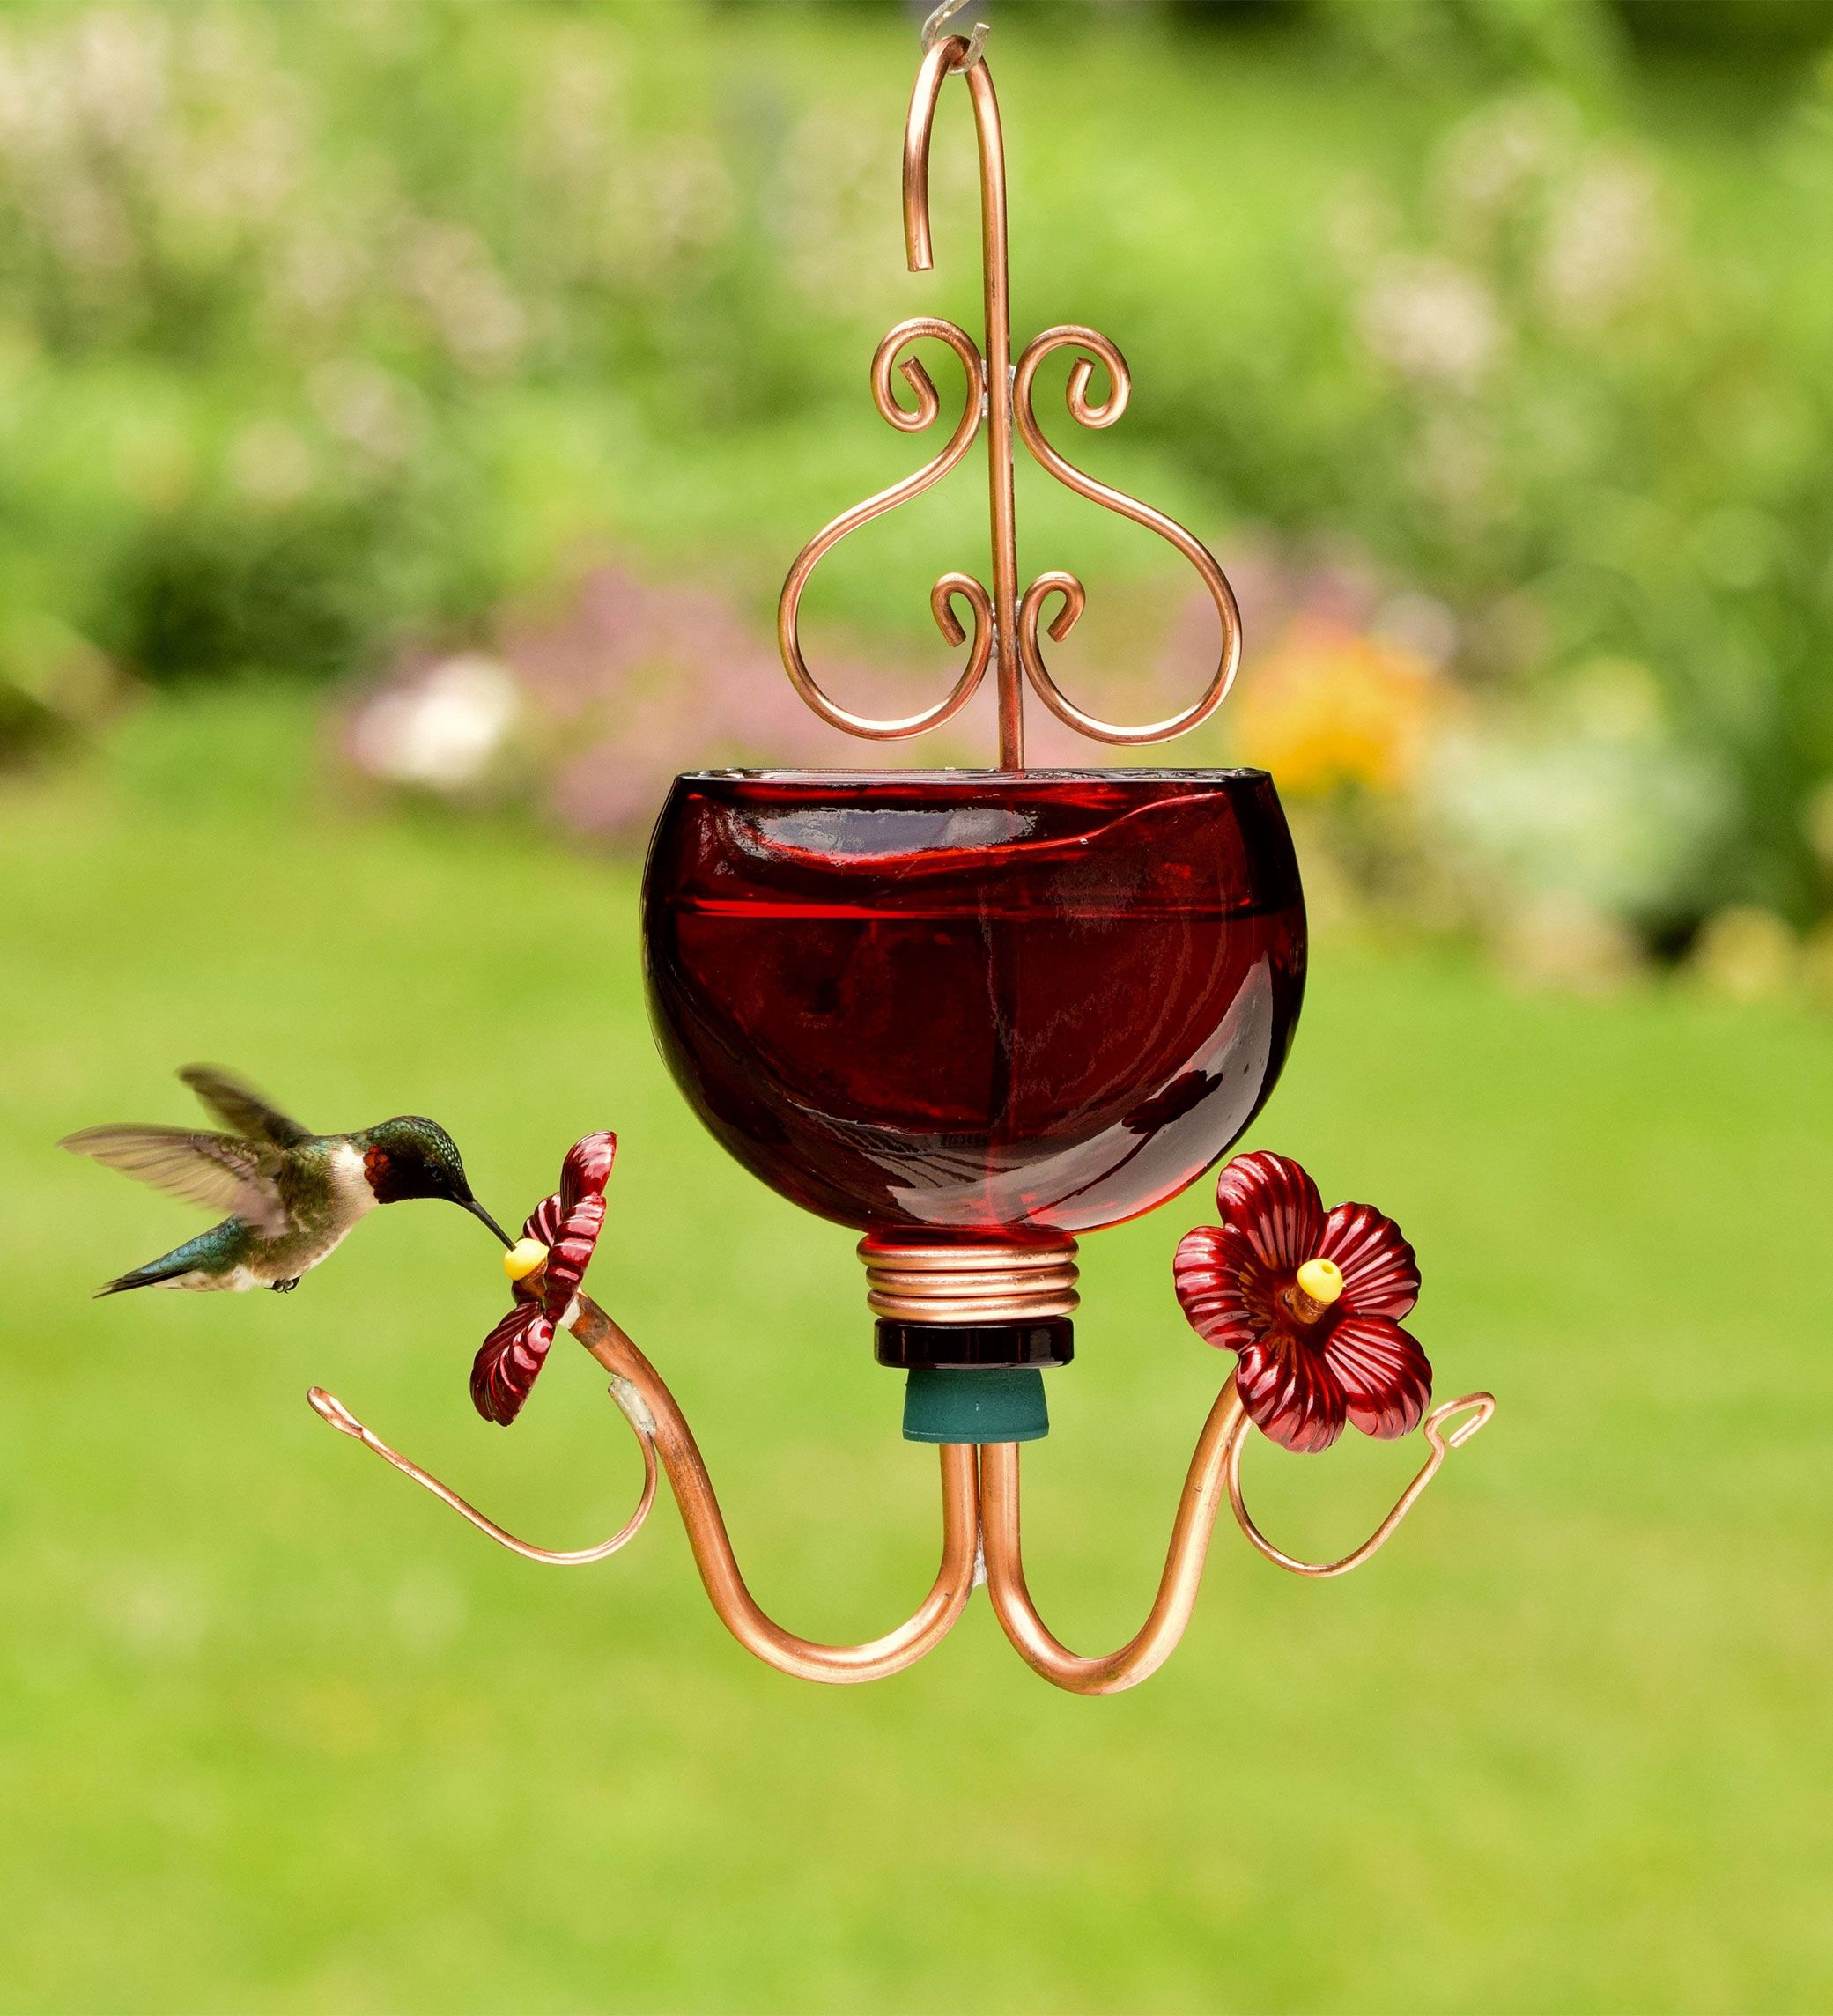 bf pet perky hummingbird us model feeder feeders decorative perkypet strawberry plastic com